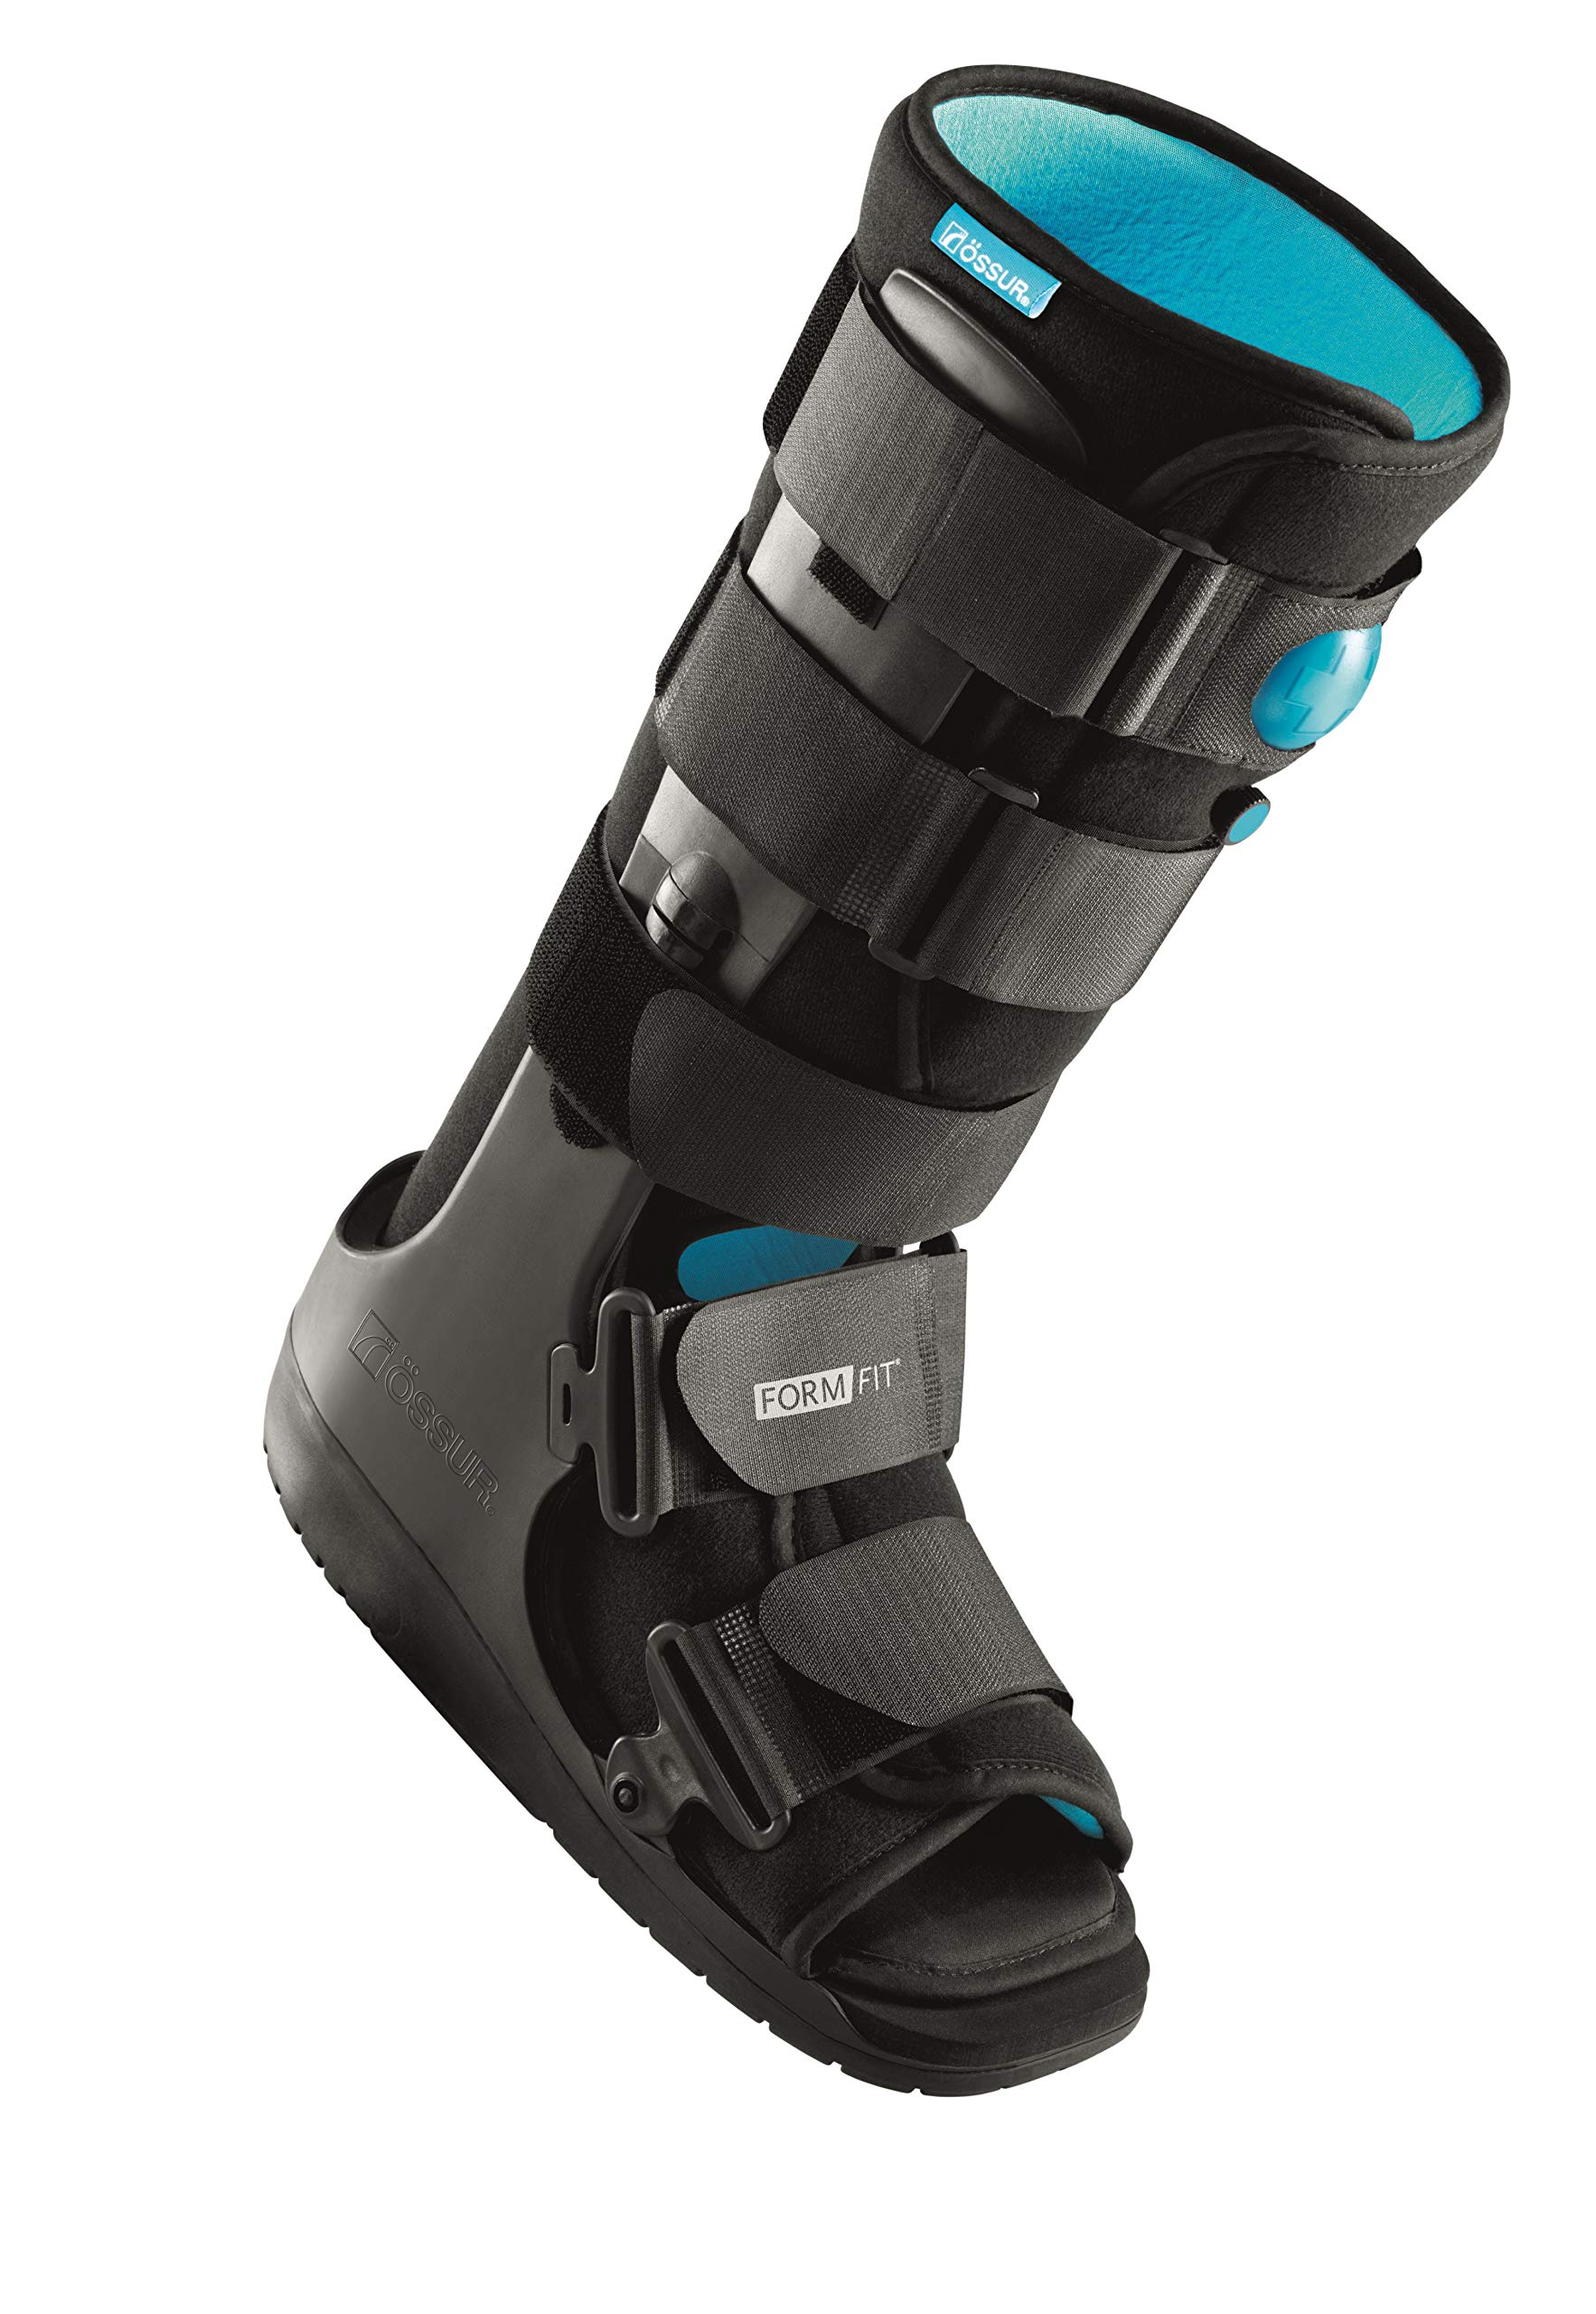 Ossur Formfit Walker with Air - Medical Grade Immobilization for Strains, Sprains & Stable Fractures with Patented Pneumatic Technology to Decrease Pain & Swelling (High Top, X-Small)